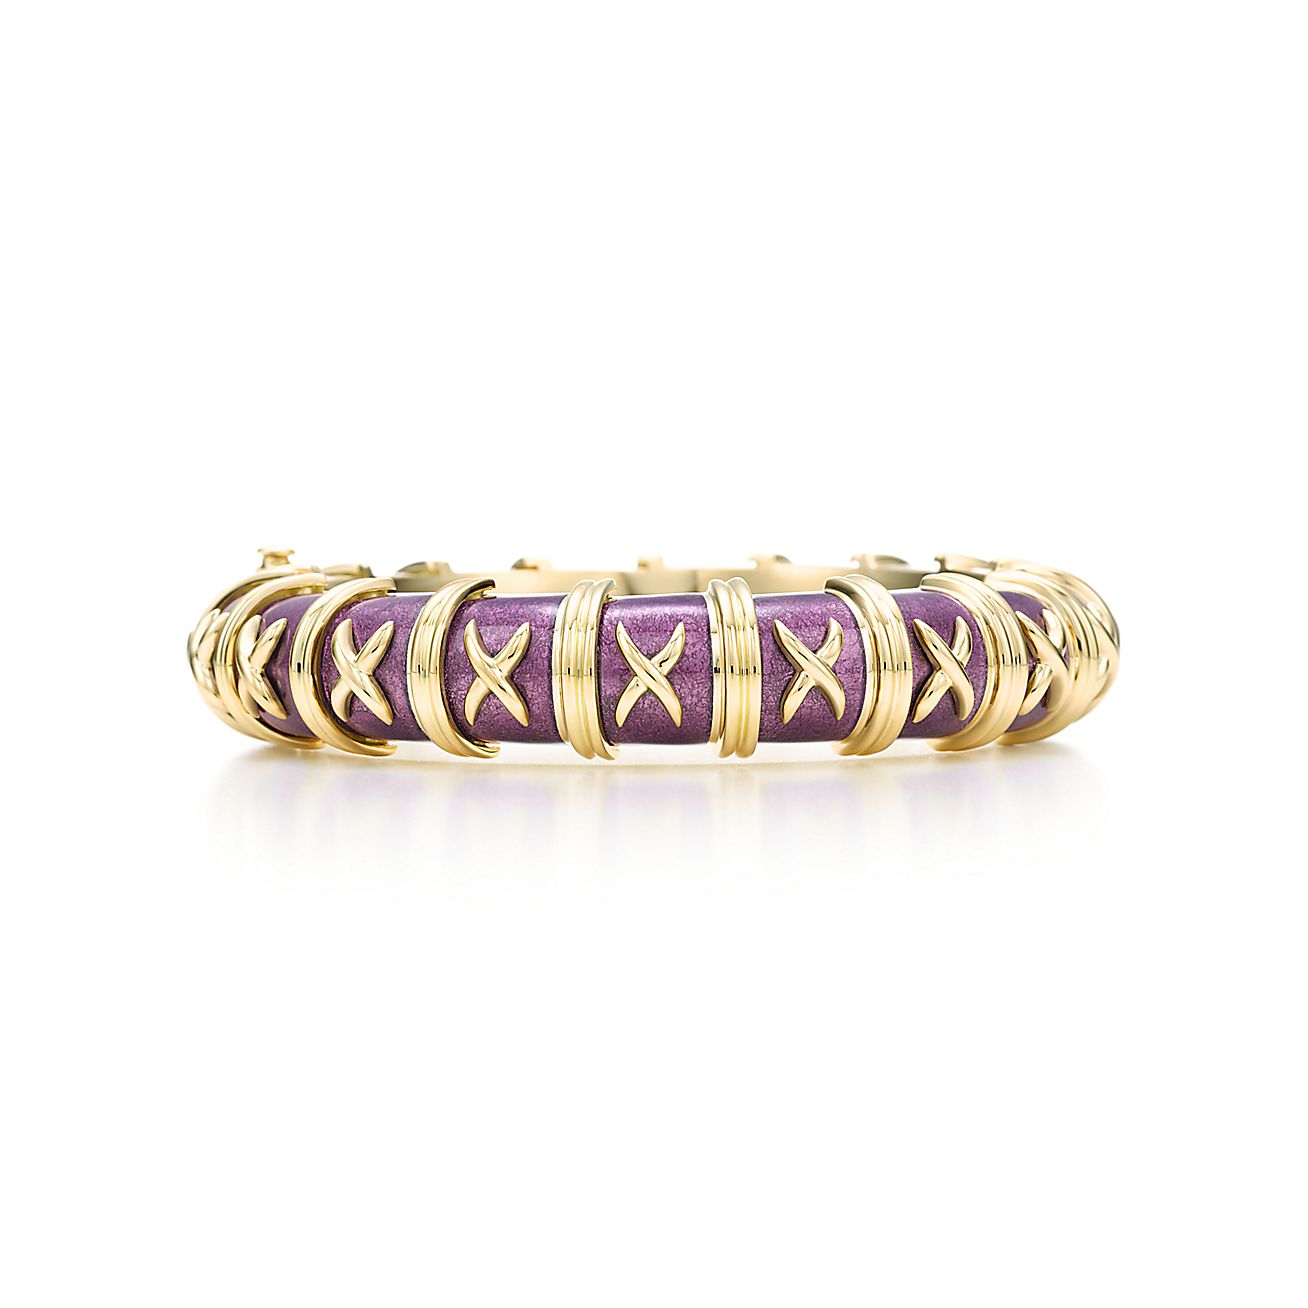 Tiffany & Co. Schlumberger®:Croisillon Bracelet